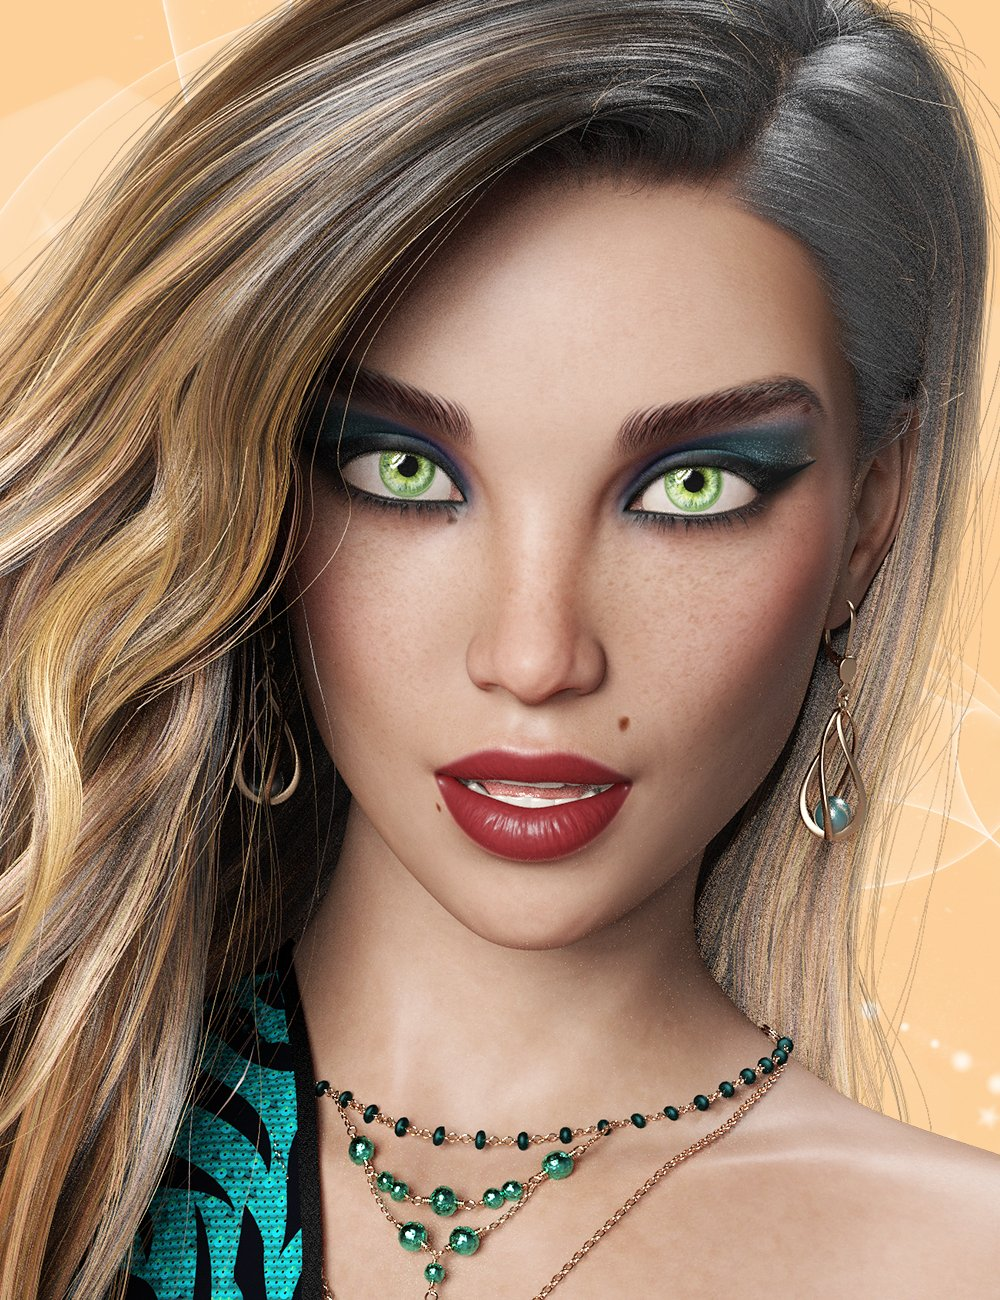 Quinley for Genesis  8.1 Female by: hotlilme74, 3D Models by Daz 3D